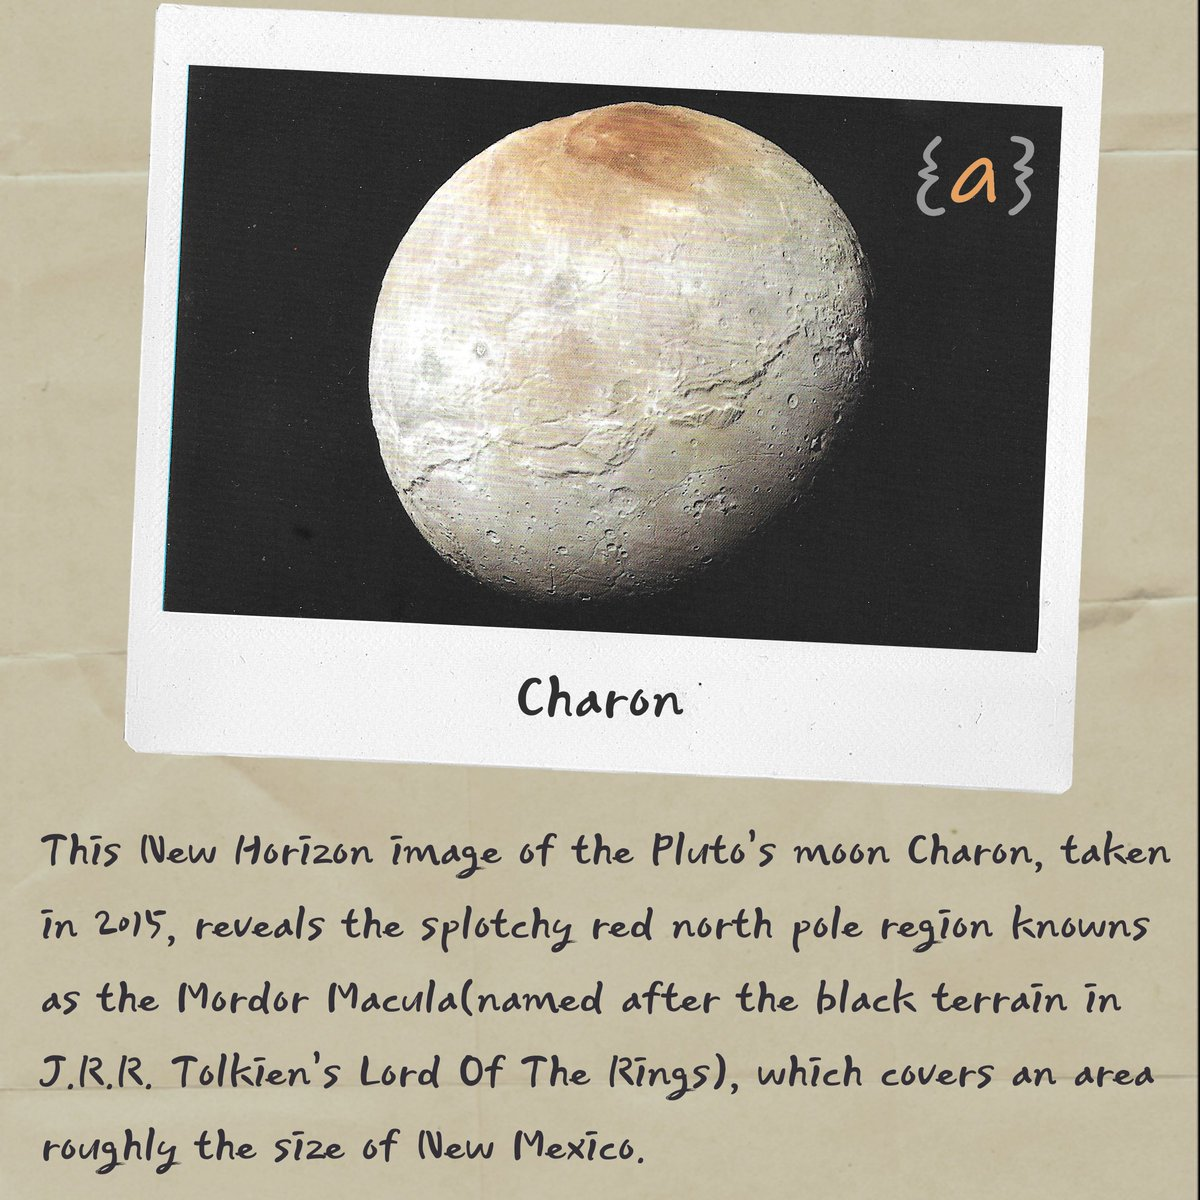 Charon #moon #pluto #newhorizon #northpole #lordoftherings #mordormacula #spacephotos #journalofankit https://t.co/xPsbaqldEa